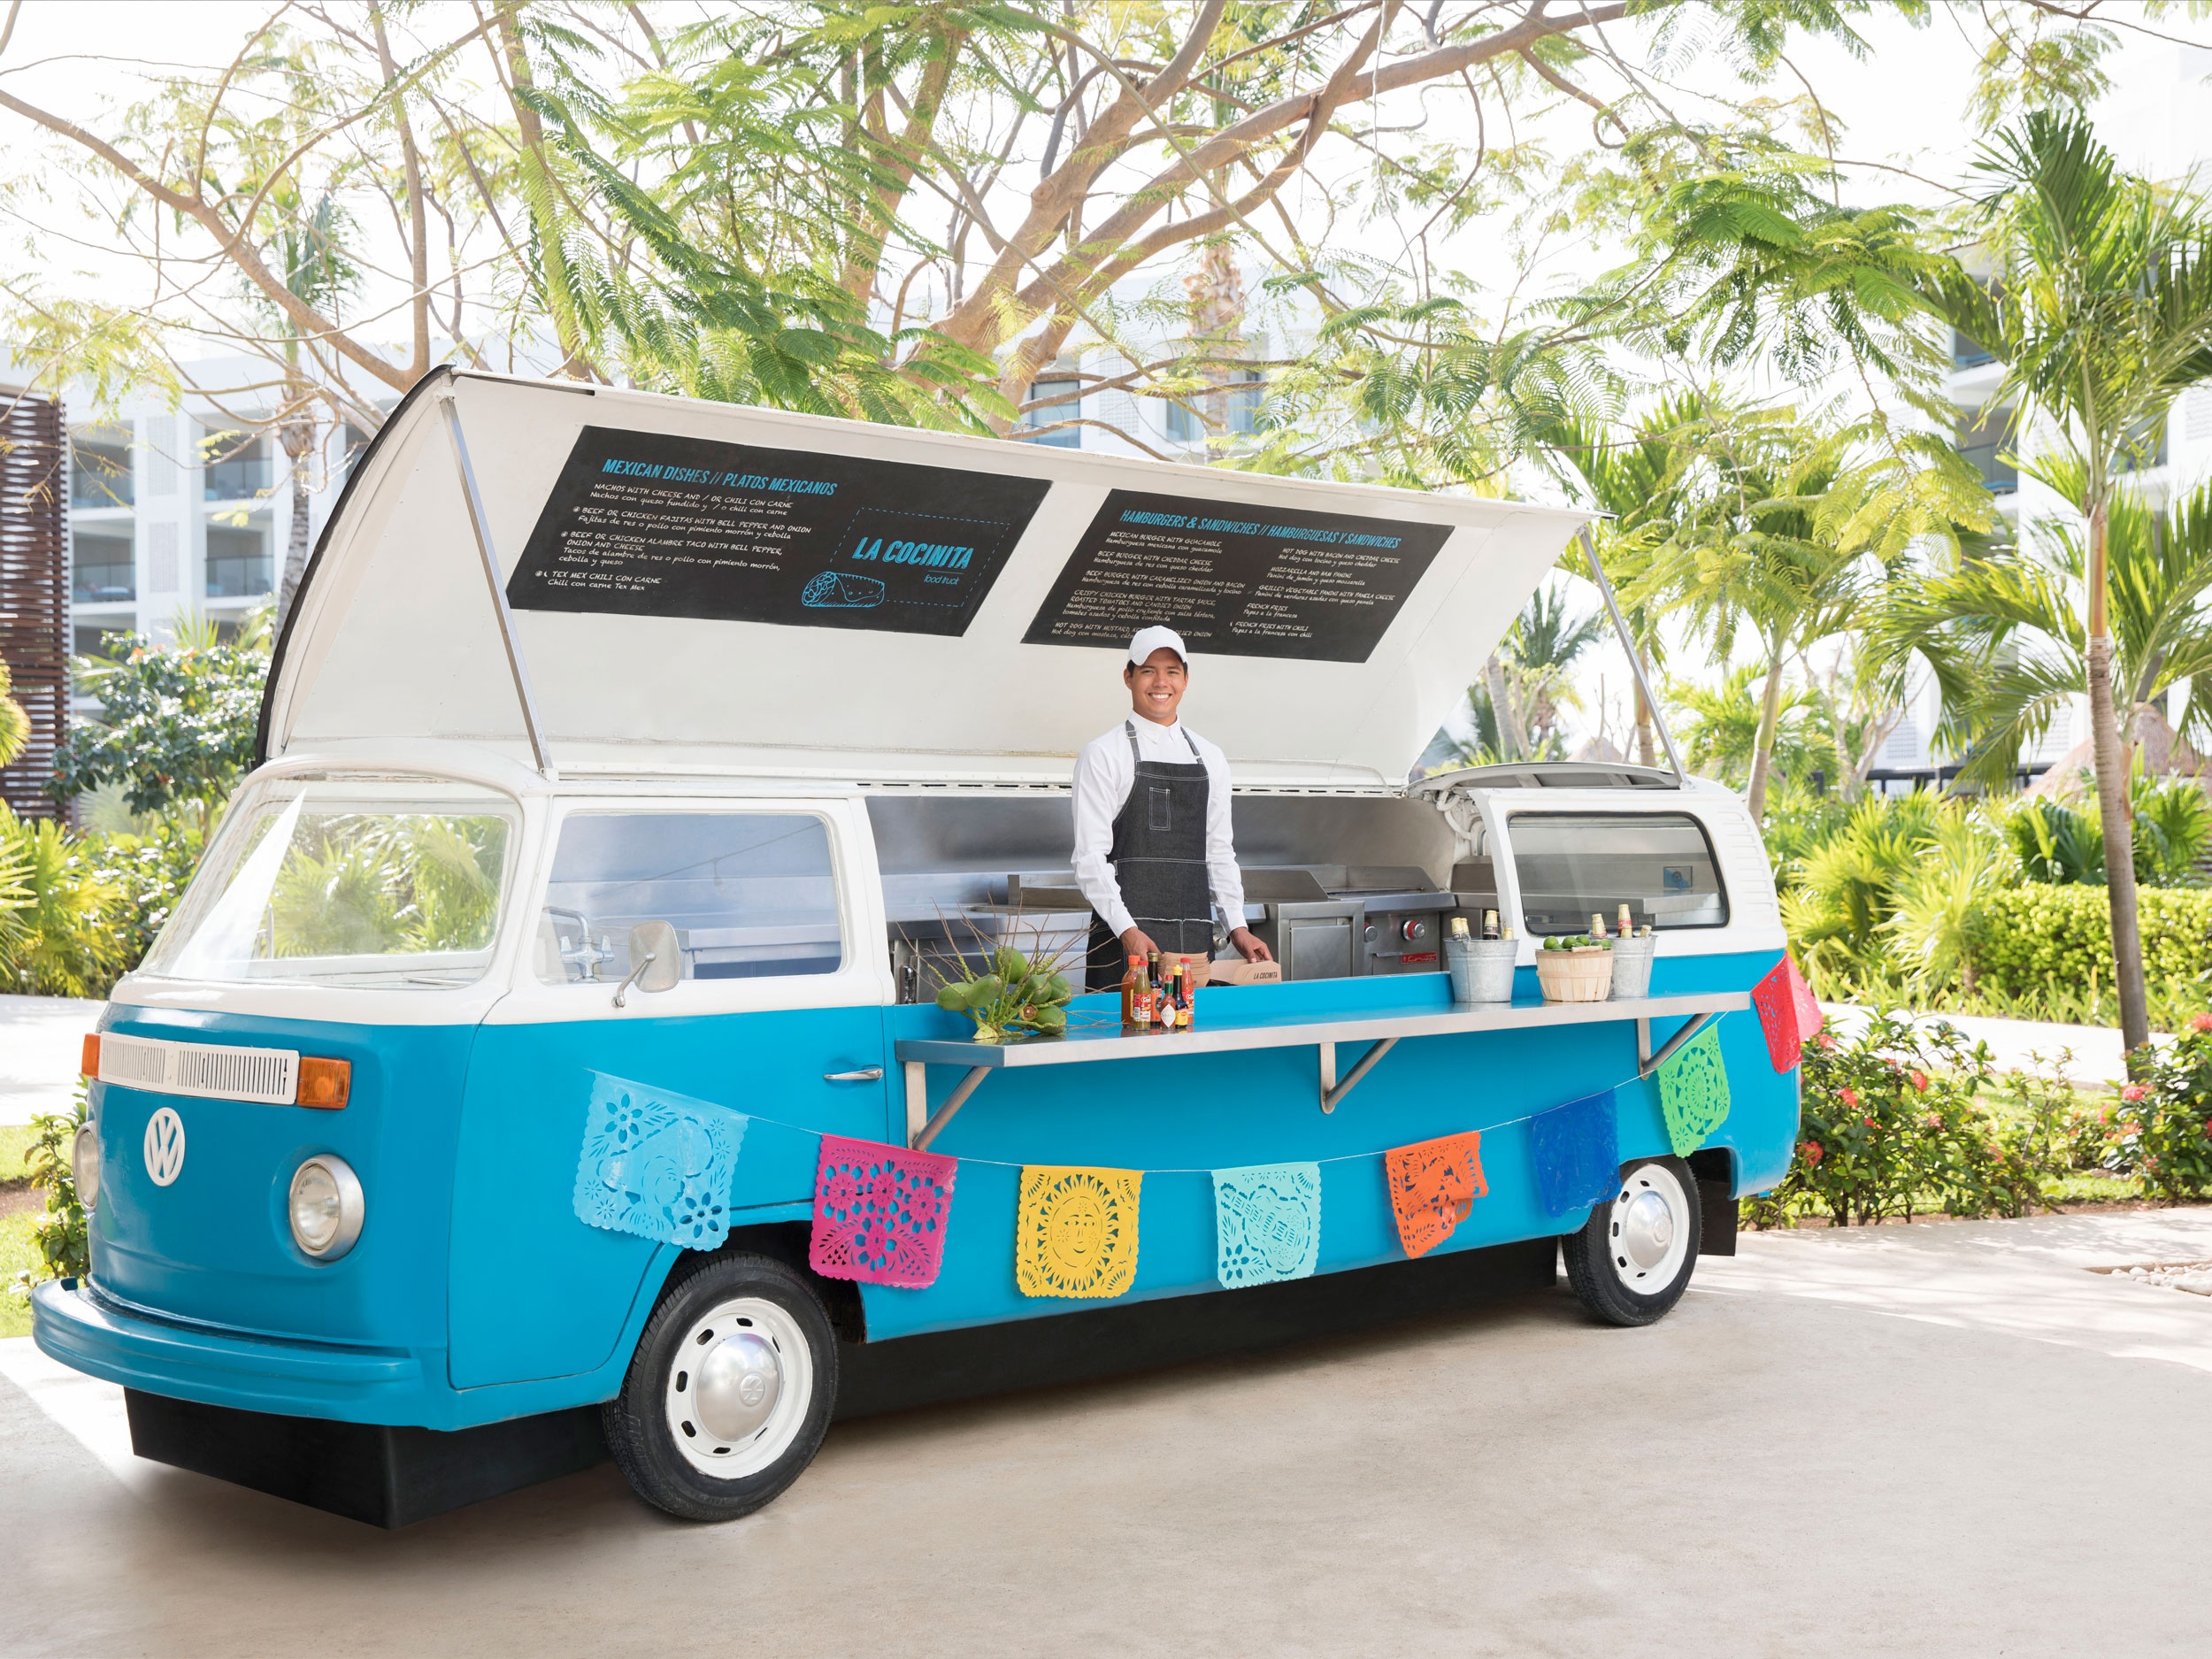 Cancun Resort Food Truck with Tacos and Burgers